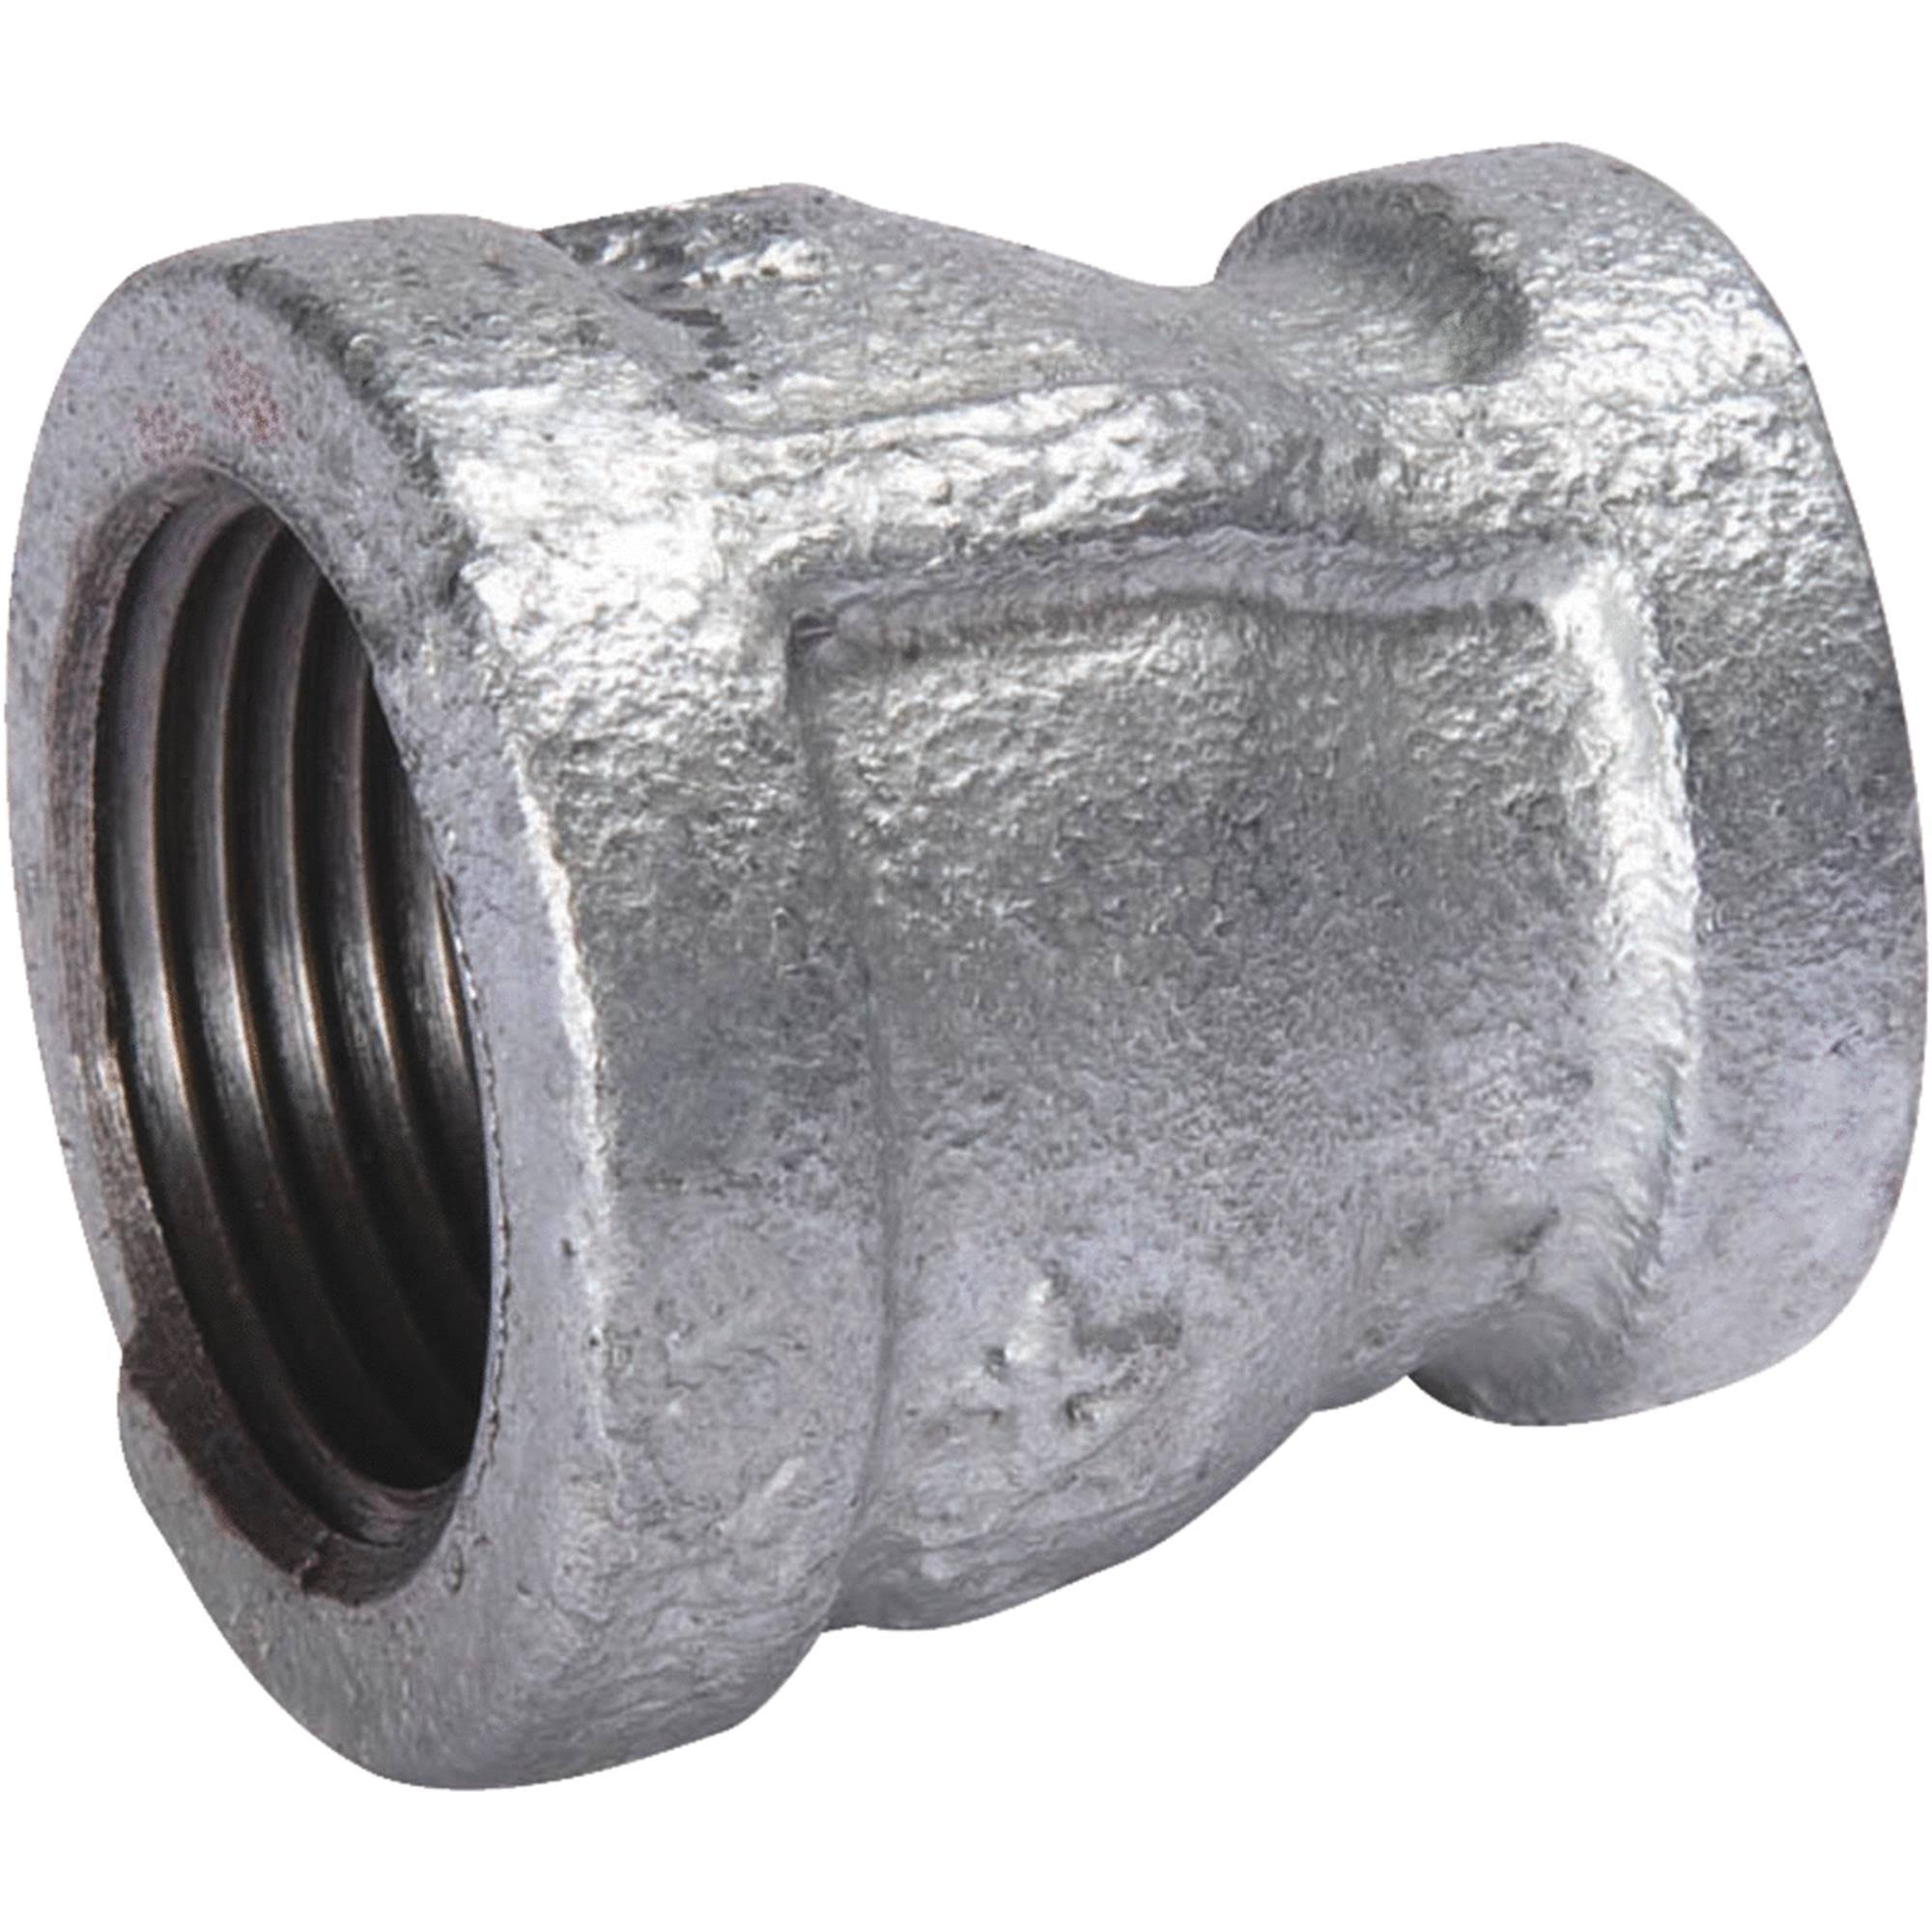 B&K Malleable Galvanized Iron Reducing Coupling - 3/8in FIP x 1/4in FIP